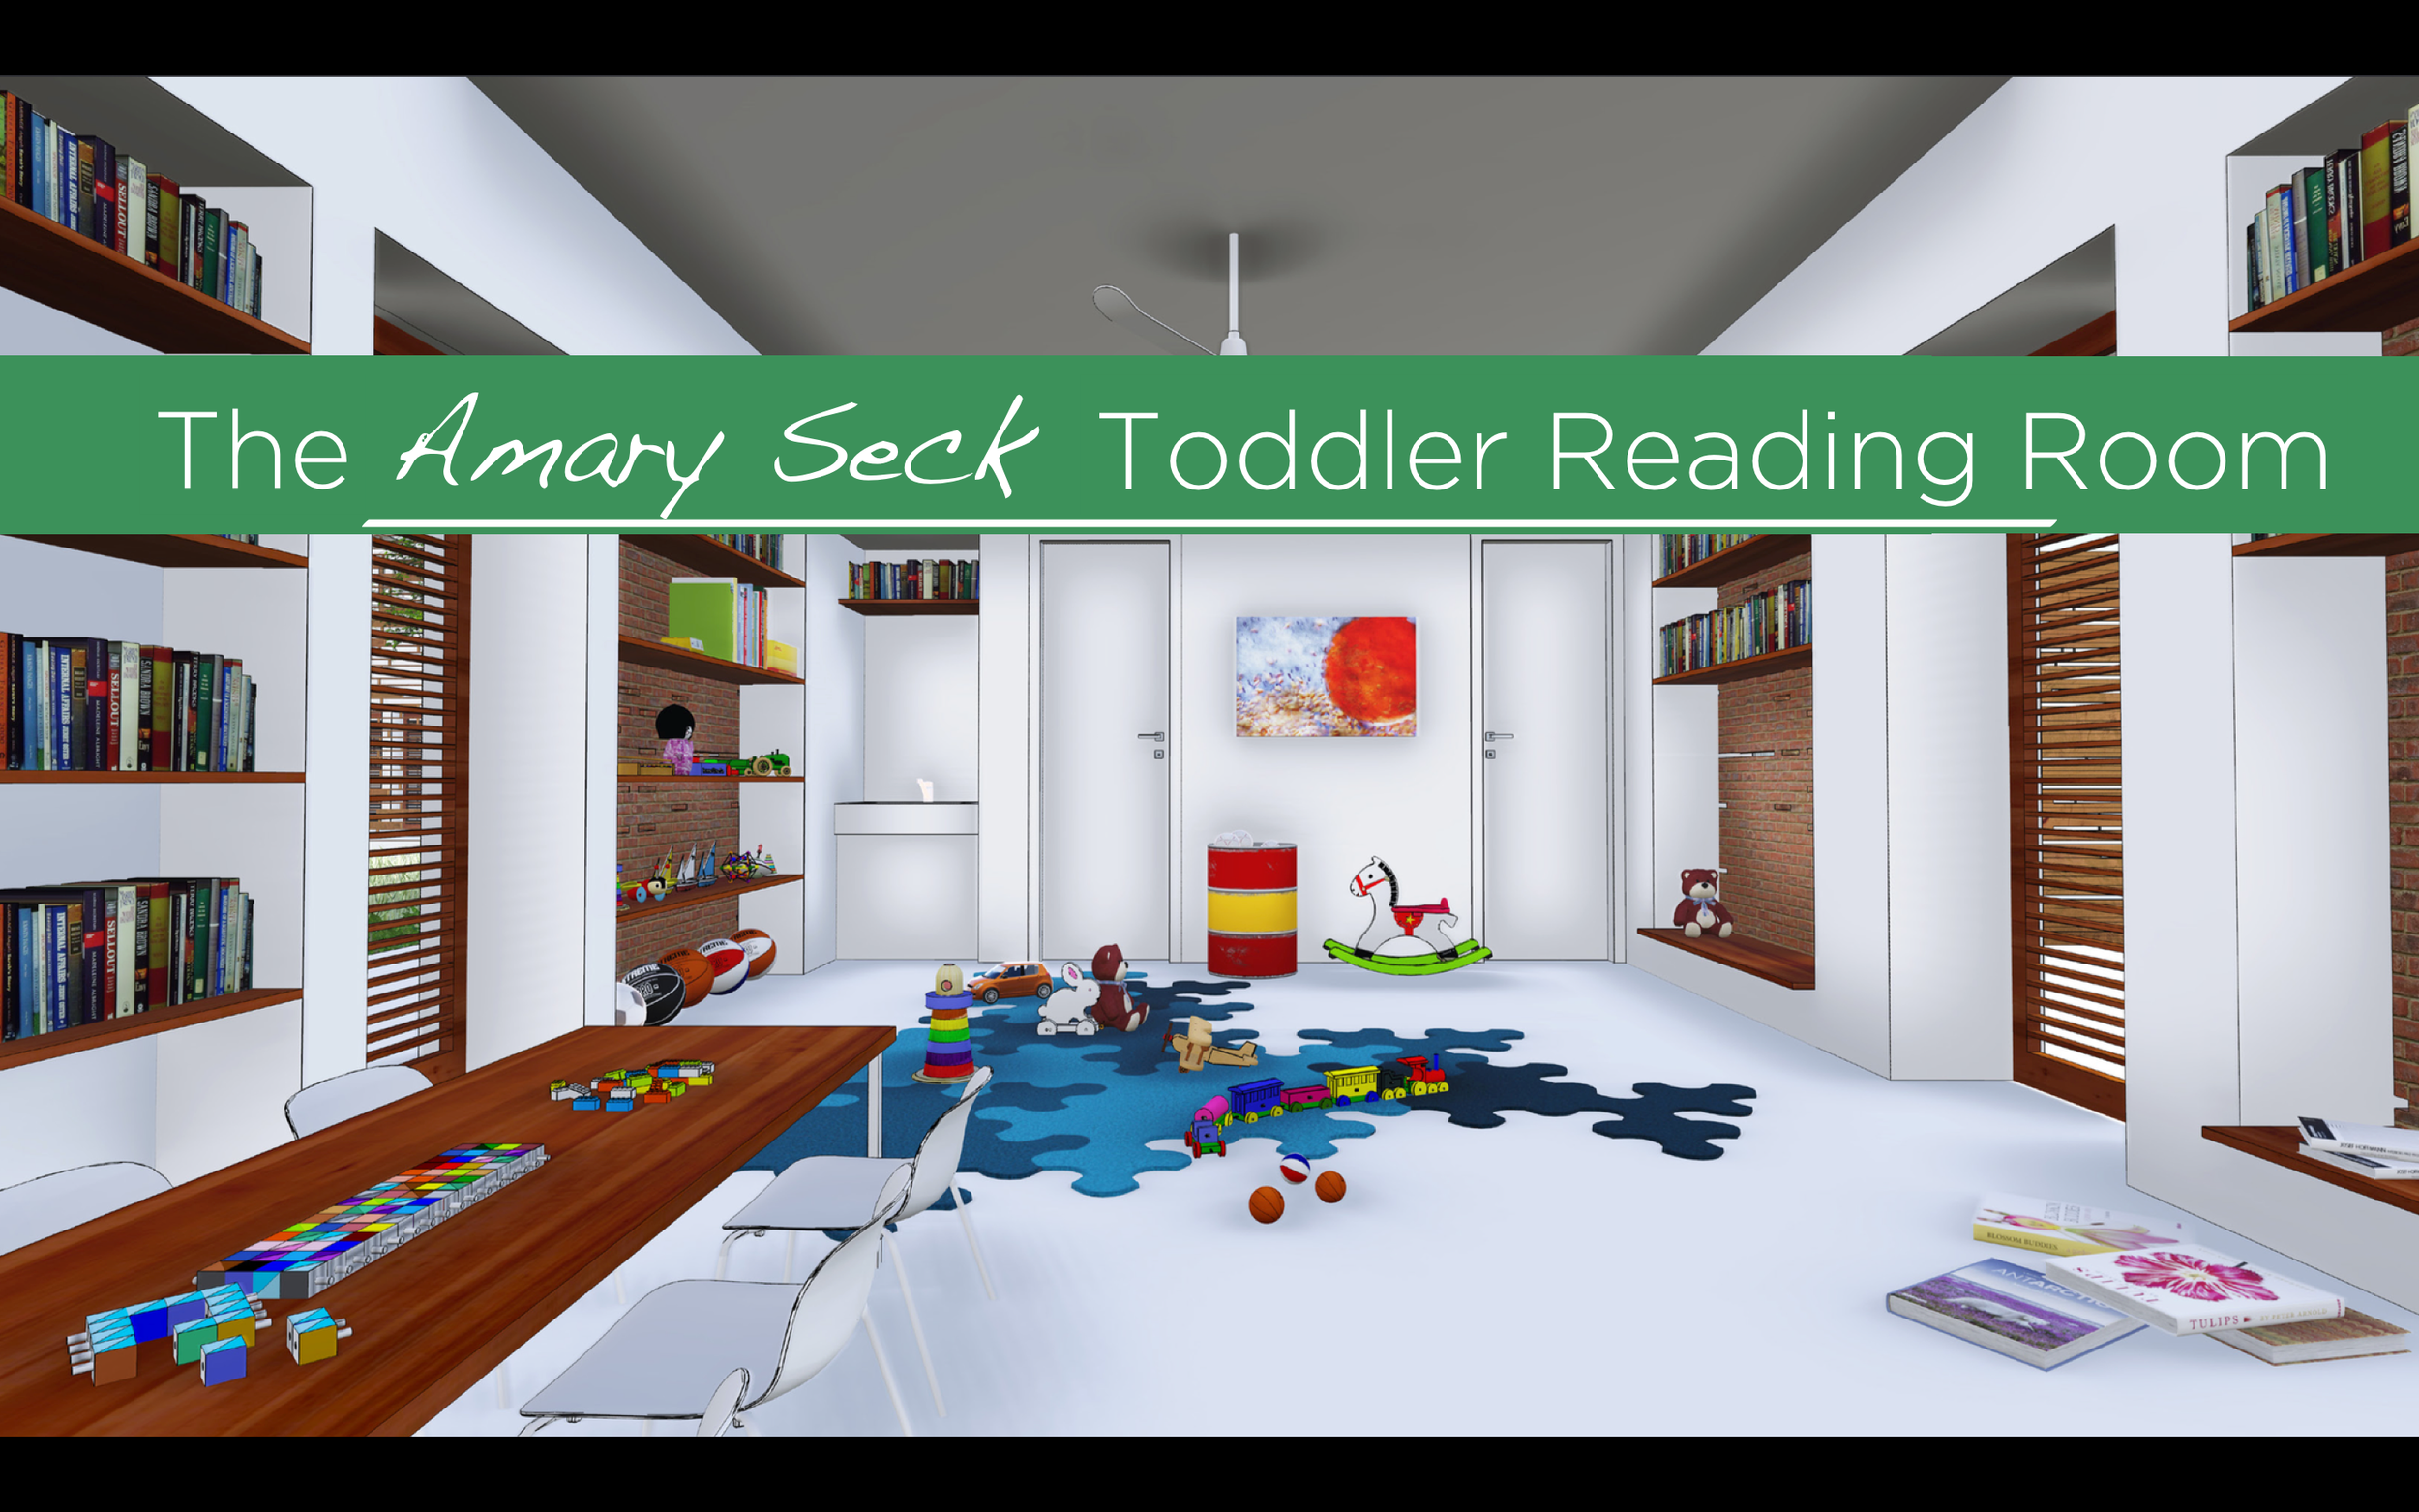 At SeneGALA 2015, we dedicated the toddler reading room to Amary Seck in honor of his work for the people of Lambaye and the hundred's of students that he inspired both in Mamaroneck and in Senegal.